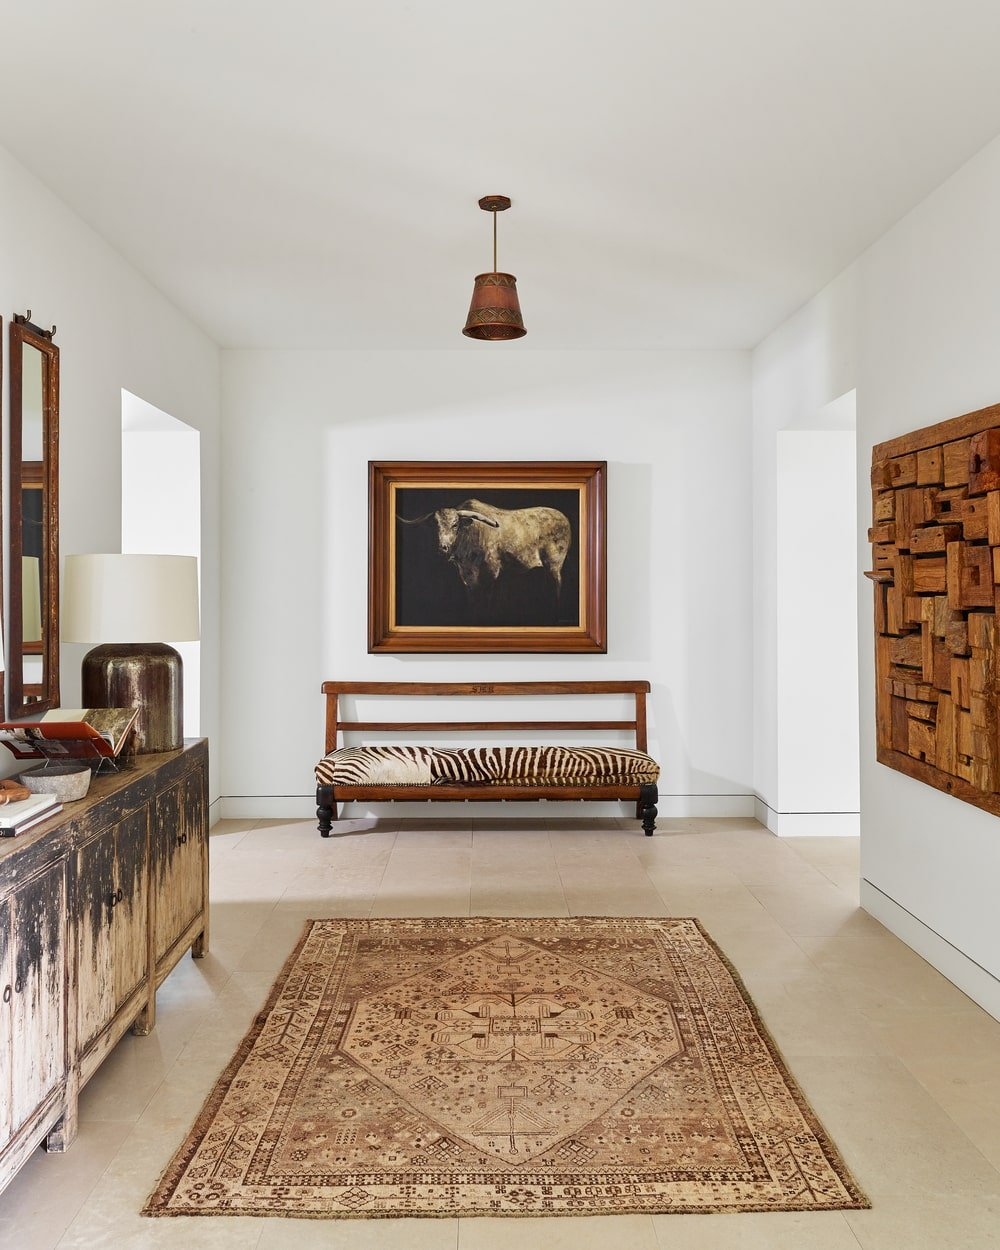 Upon entry of the house, you are welcomed by this foyer that has a console table on the side and wall-mounted artworks that stand out against the bright white walls.